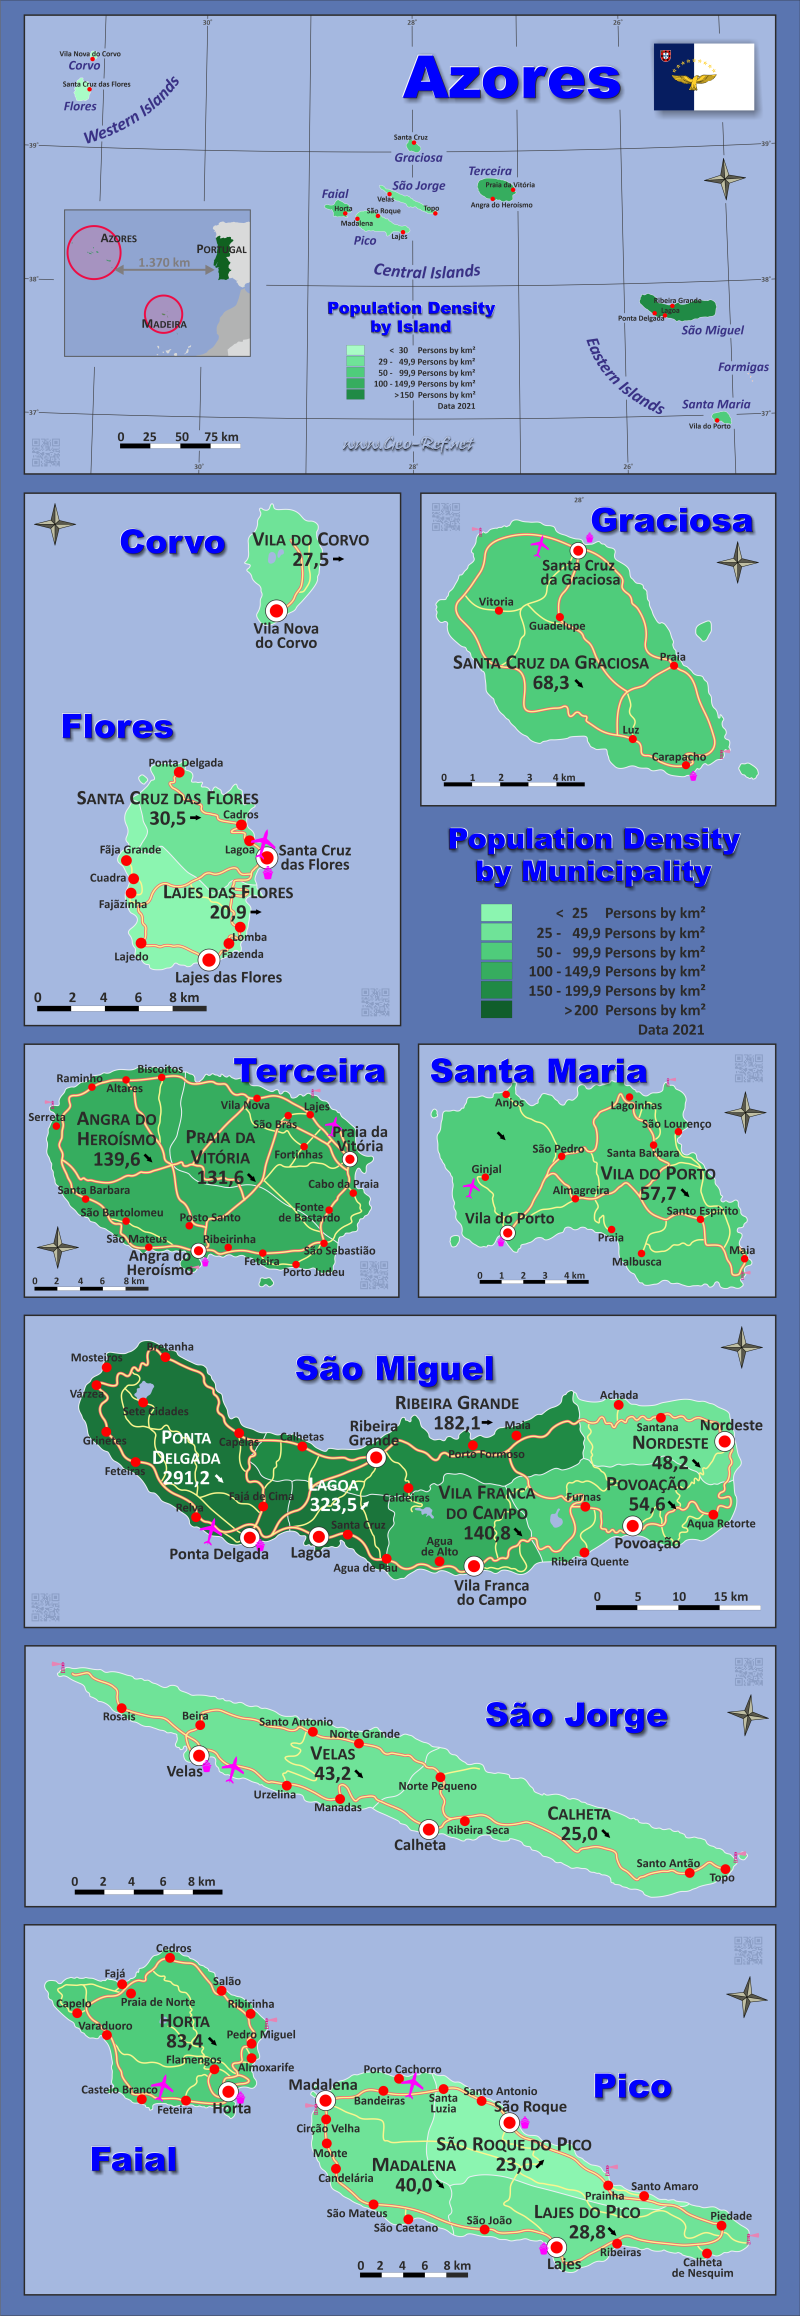 Map Azores - Population density